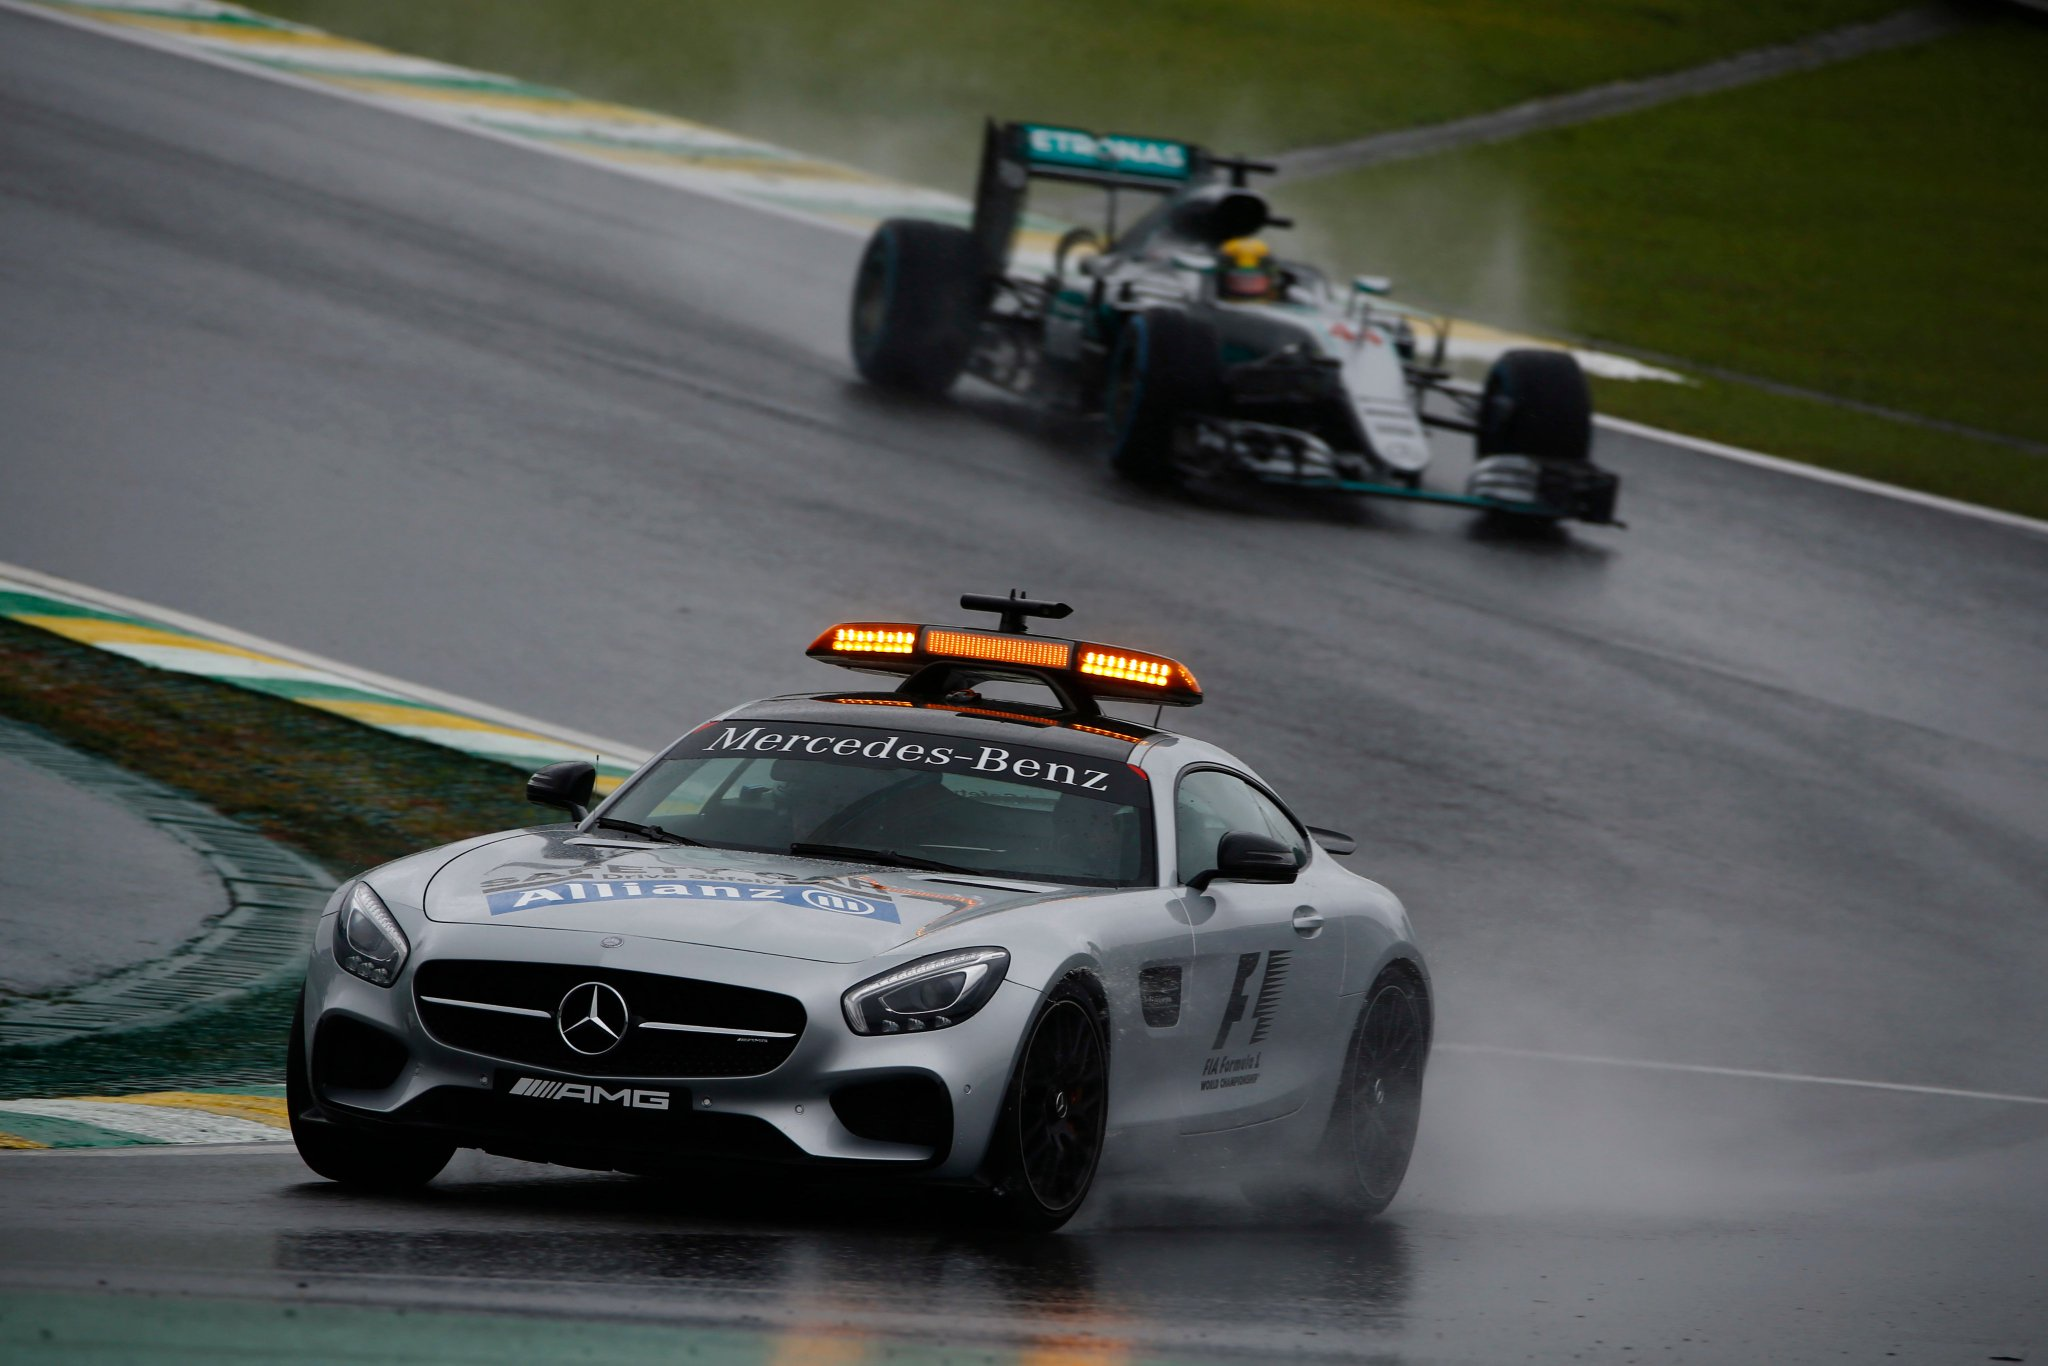 We are rolling behind the Safety Car at Interlagos ☔️  A reminder, @nico_rosberg will be @F1 Champion if he wins in Brazil  @LewisHamilton MUST go out there and win to take the battle to the final round in Abu Dhabi! Can he do it... 💪  #F1Rewind ⏪ #BrazilGP https://t.co/nny87tTMQP